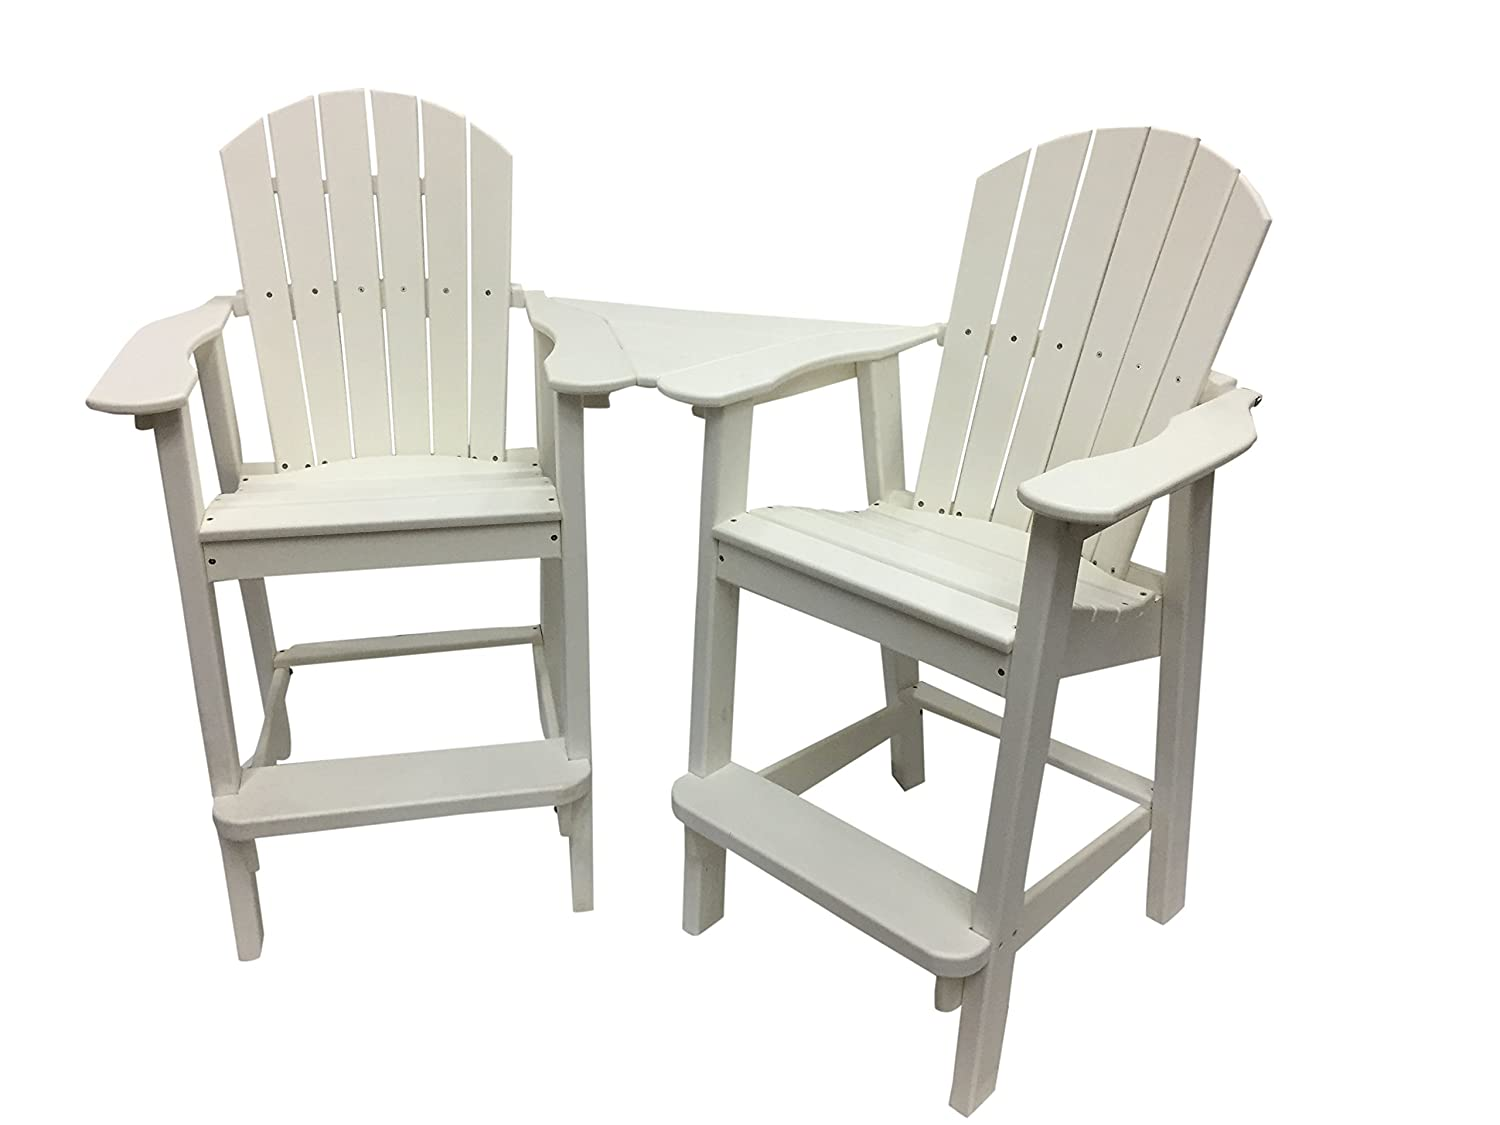 Phat Tommy Recycled Poly Resin Balcony Chair Settee – Durable and Adirondack Patio Furniture, White